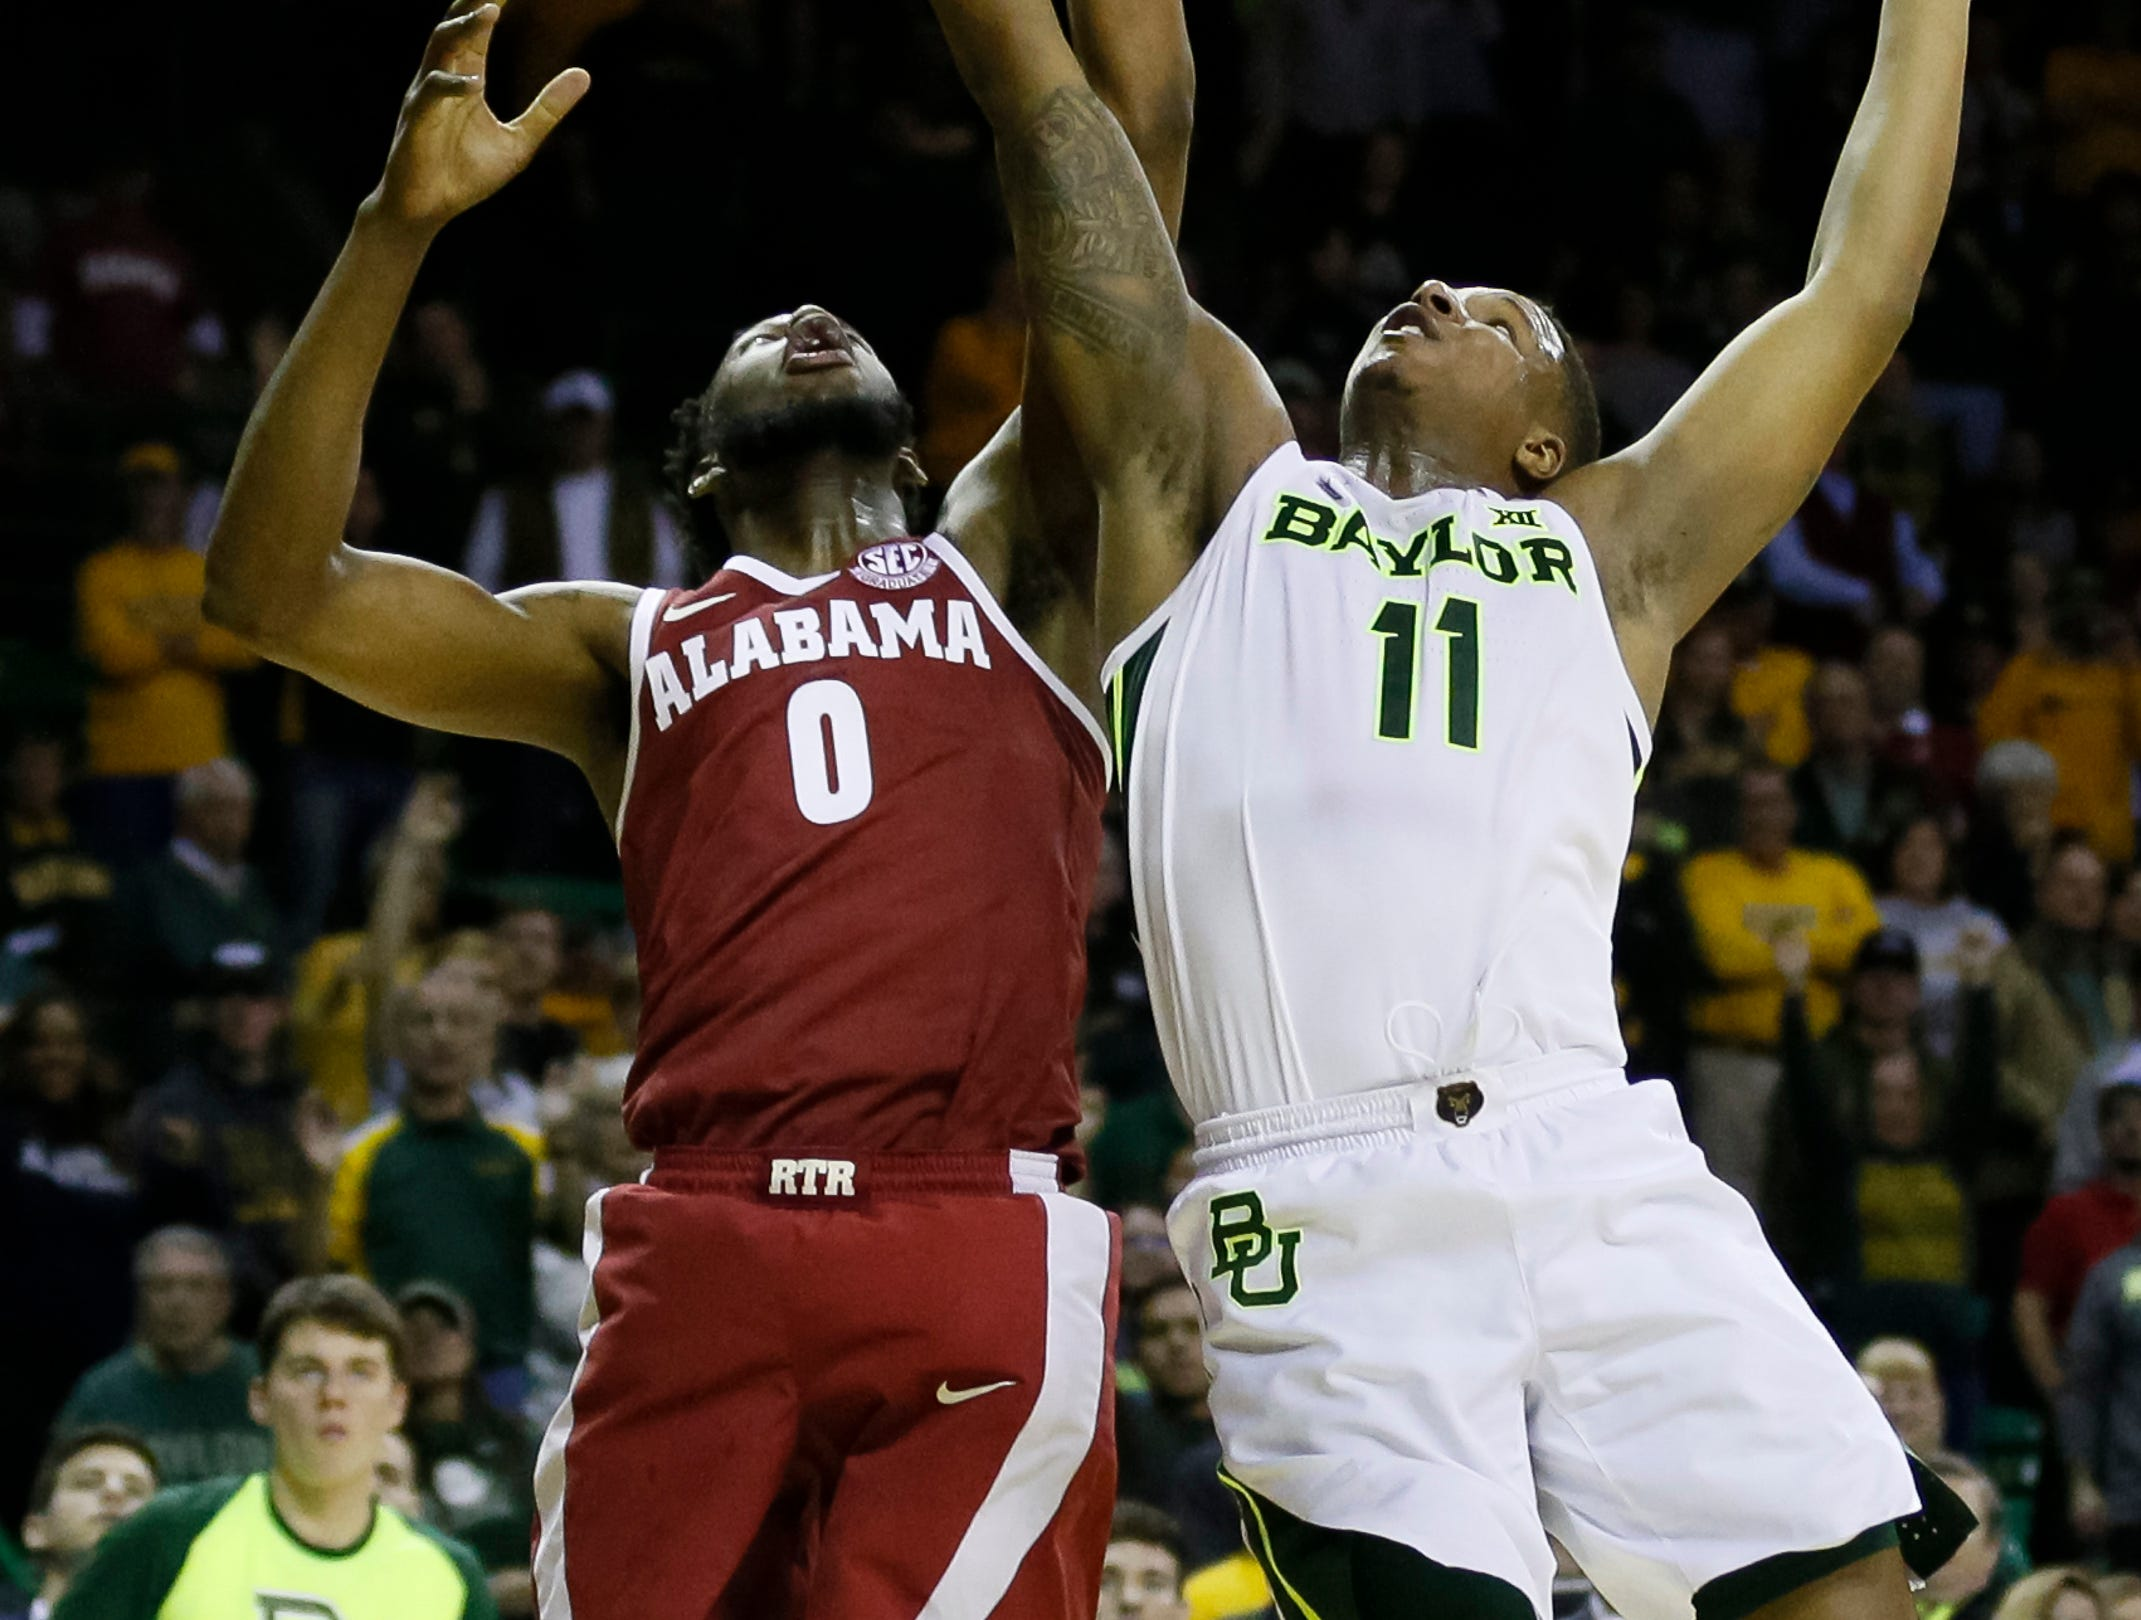 Jan 26, 2019; Waco, TX, USA; Alabama Crimson Tide forward Donta Hall (0) and Baylor Bears guard Mark Vital (11) reach for the rebound during the second half at Ferrell Center. Mandatory Credit: Ray Carlin-USA TODAY Sports